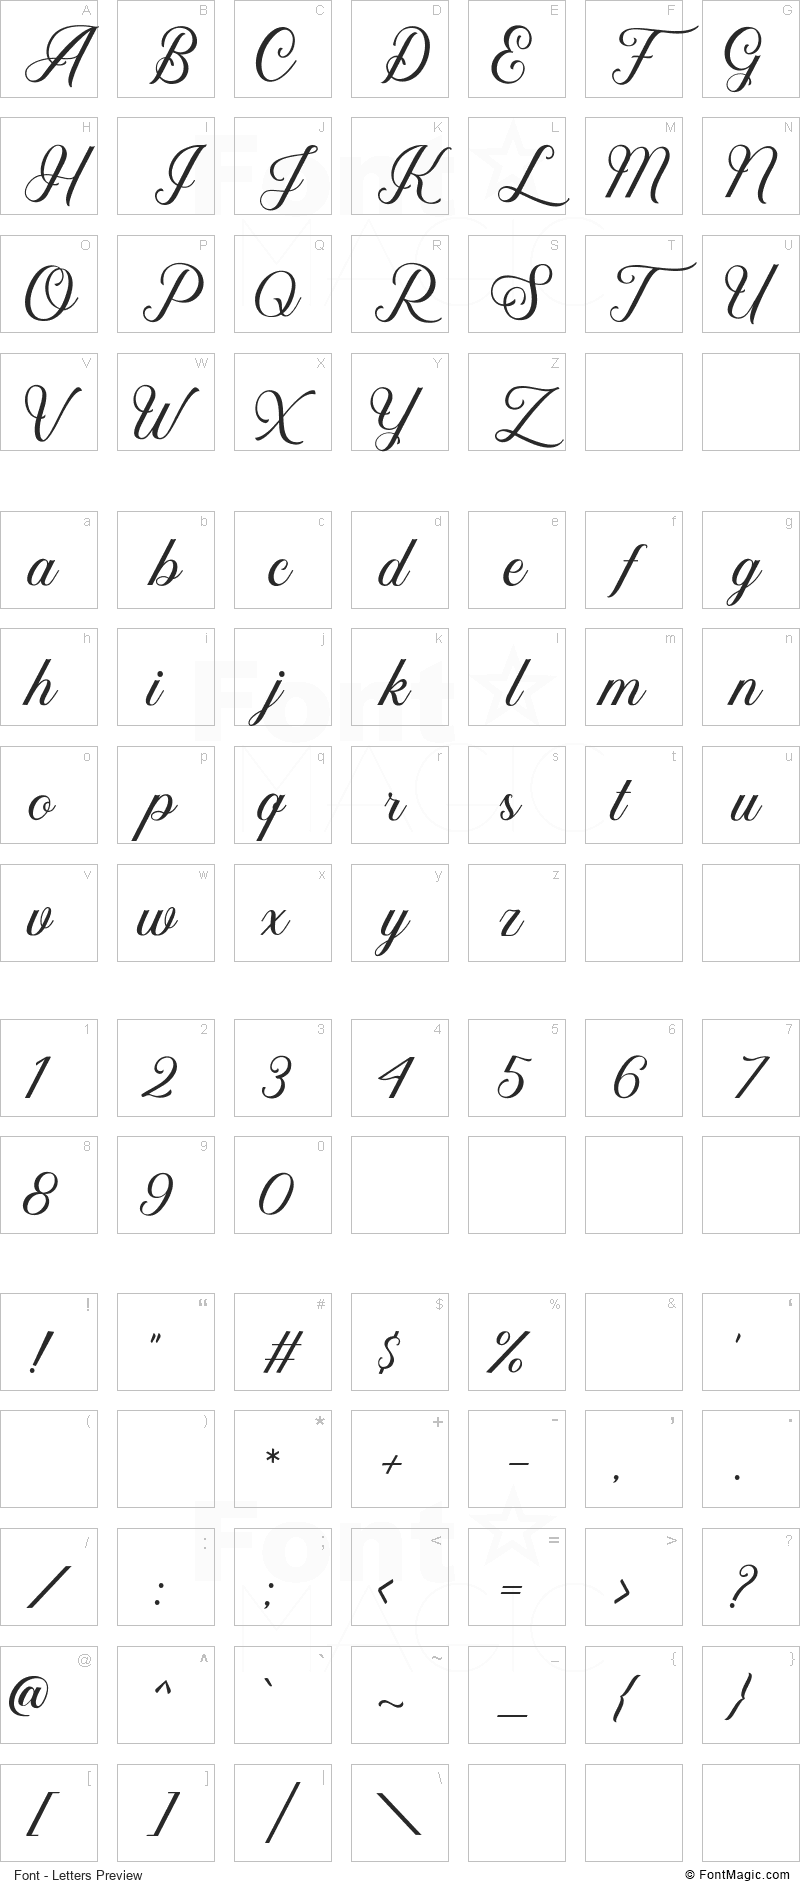 Kaylar Font - All Latters Preview Chart